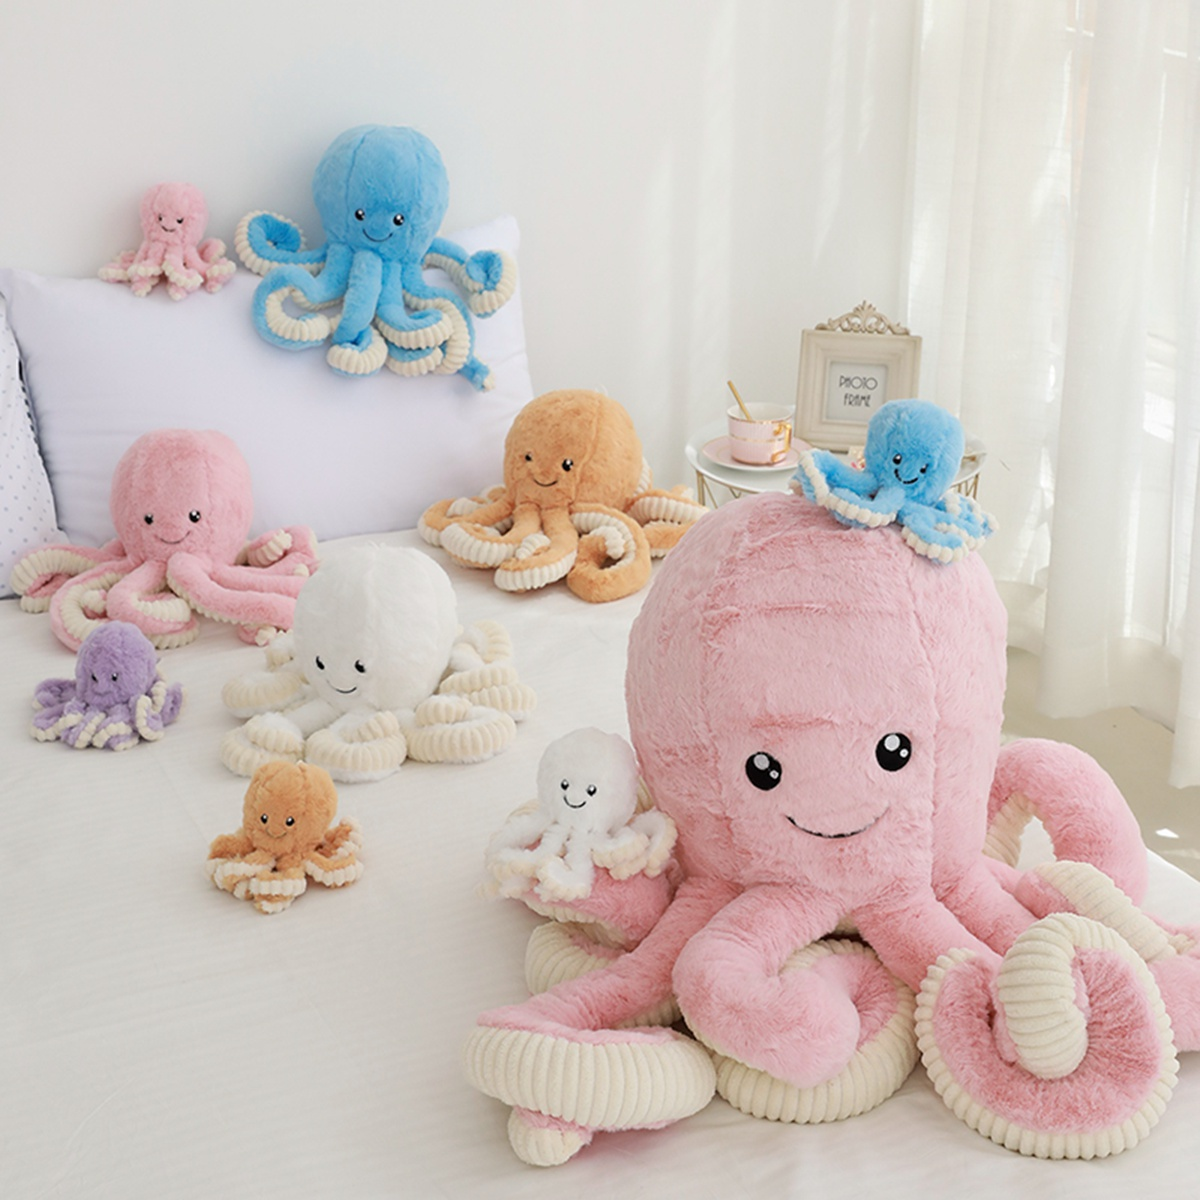 40cm-<font><b>80cm</b></font> Lovely Simulation octopus Pendant Plush Stuffed Toy Soft Animal Home Accessories Cute Animal <font><b>Doll</b></font> Children Gifts image